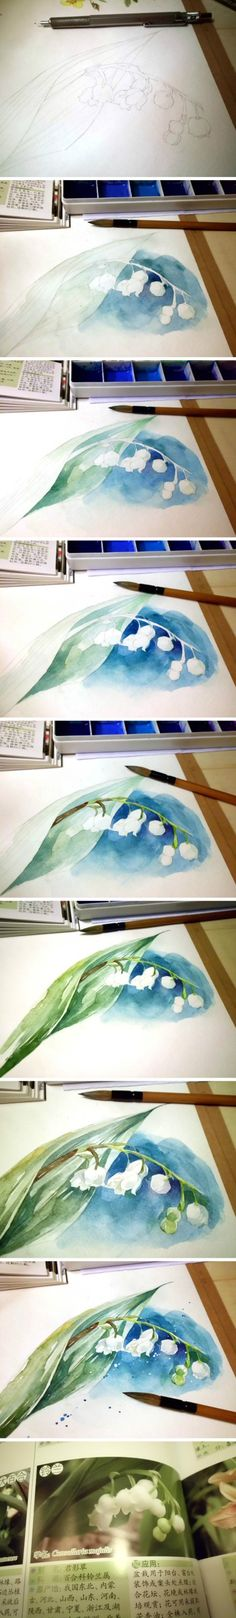 Watercolor step by step lily of the valley painting. Painting & Drawing, Watercolour Painting, Watercolor Flowers, Watercolours, Watercolor Tips, Drawing Step, Watercolour Tutorials, Watercolor Techniques, Art Techniques